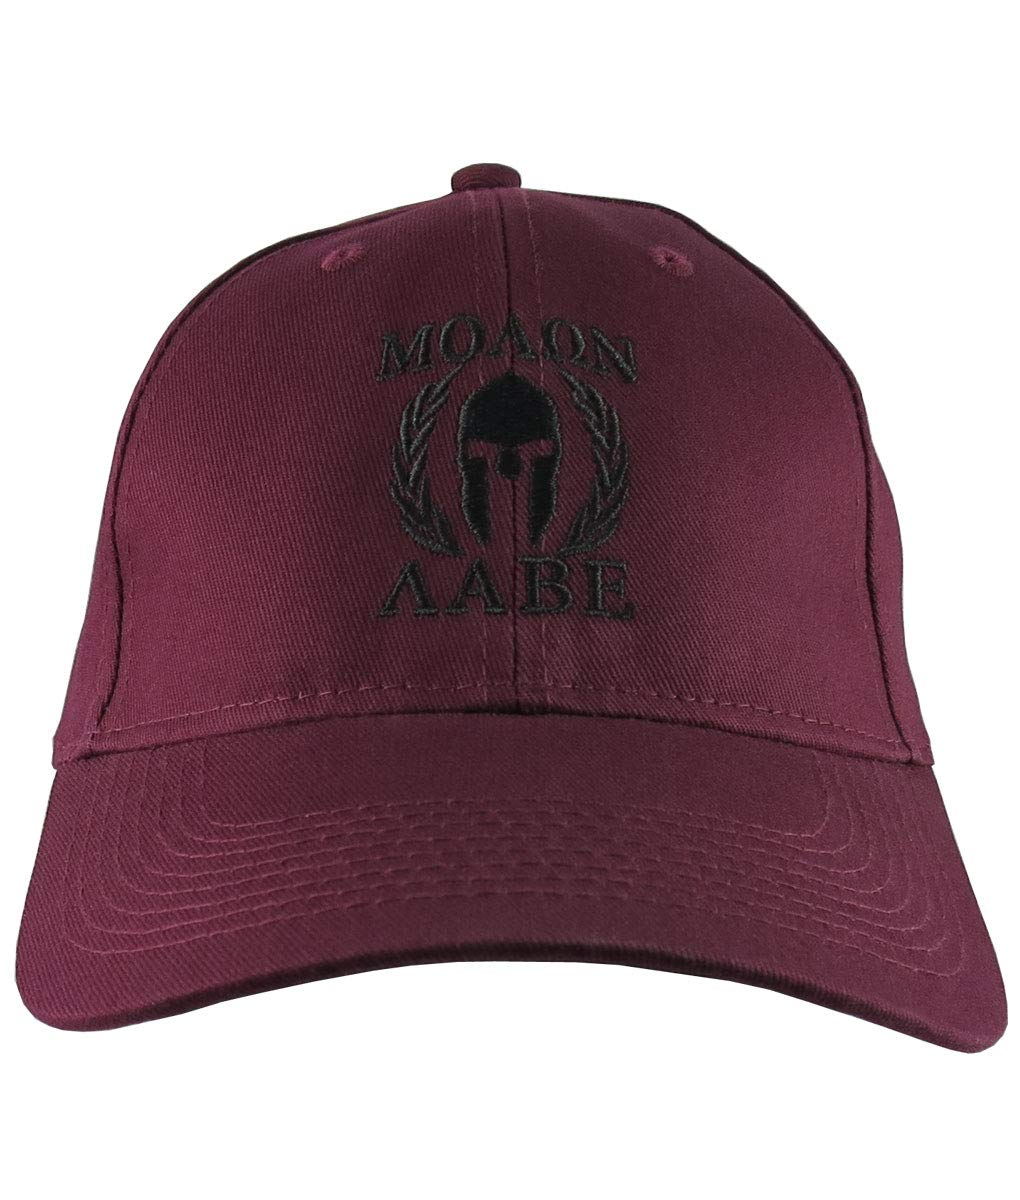 90d2706d Amazon.com: Molon Labe Spartan Warrior Mask in Laurels Black Embroidery on  an Adjustable Burgundy Red Structured Baseball Cap: Handmade